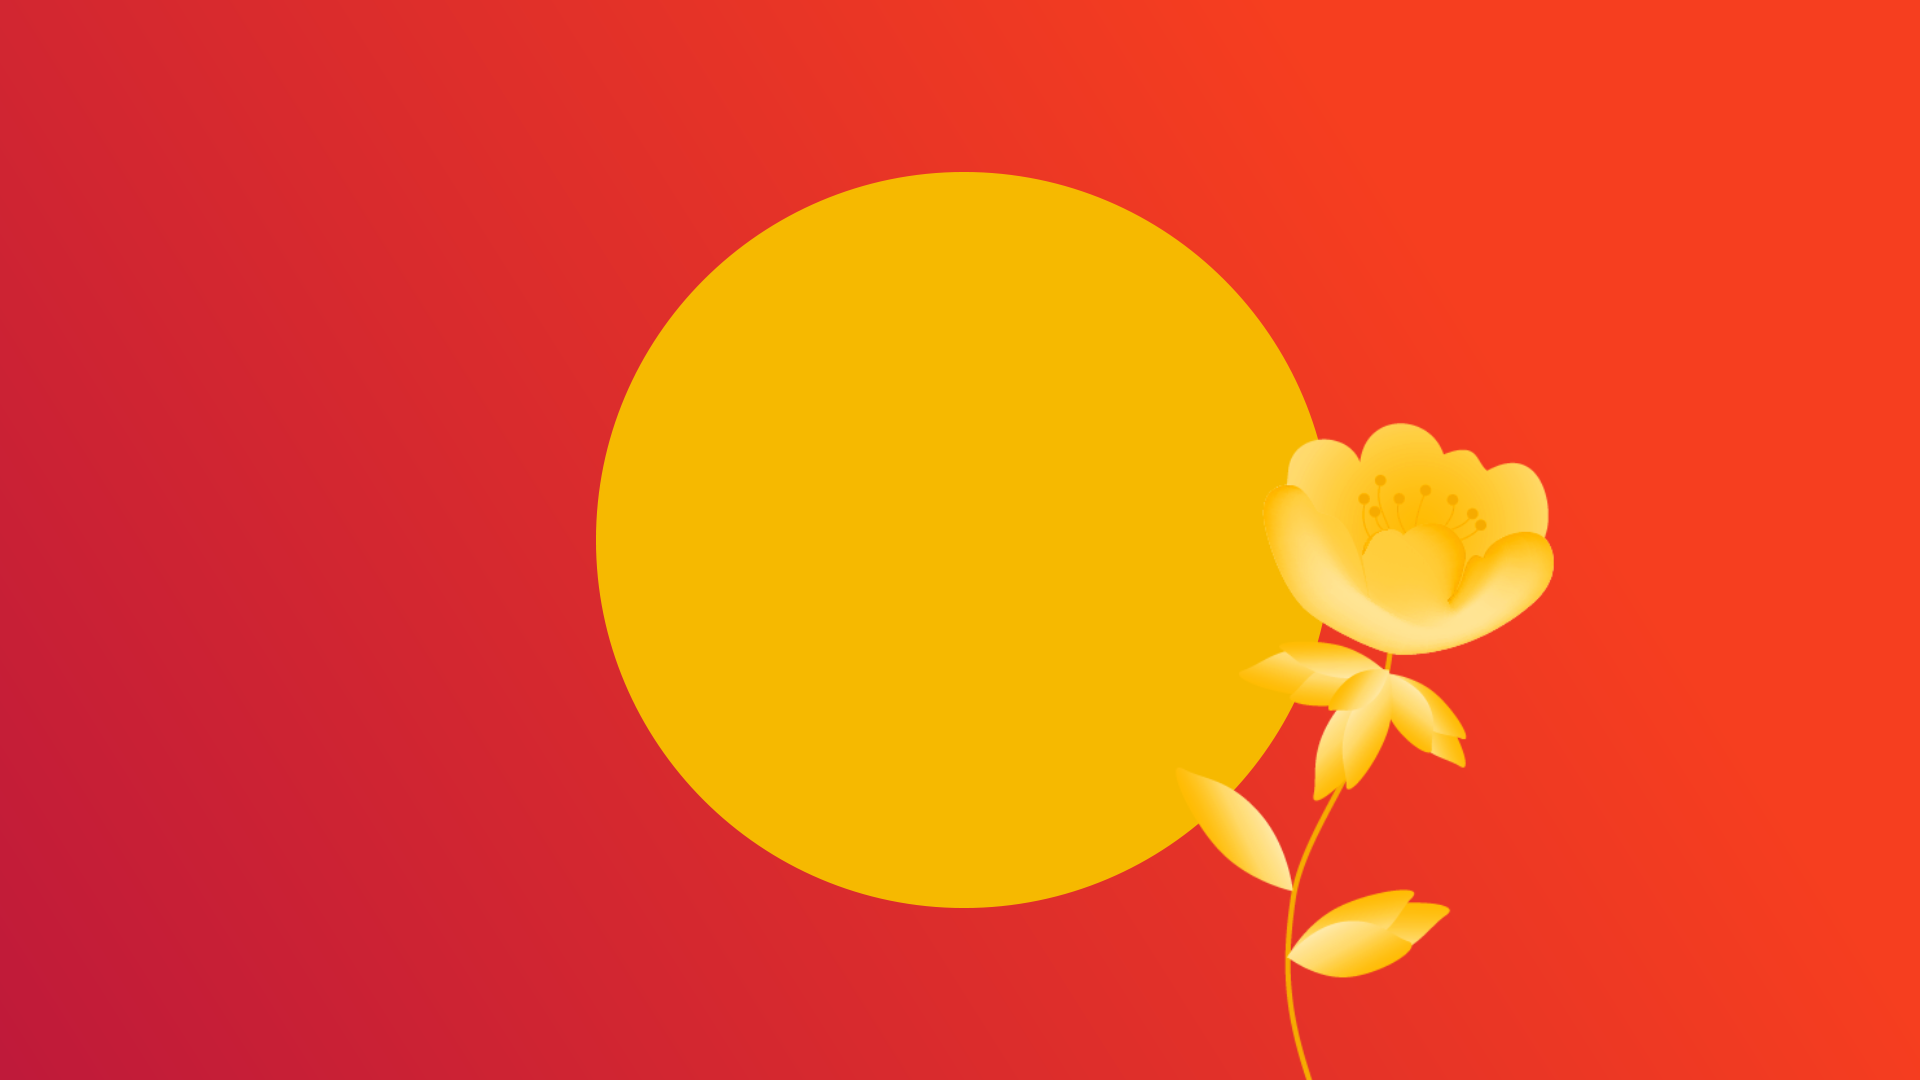 Affiliate marketing, inner circle of Digital Marketing, yellow circle on red background with sprouting yellow flower.